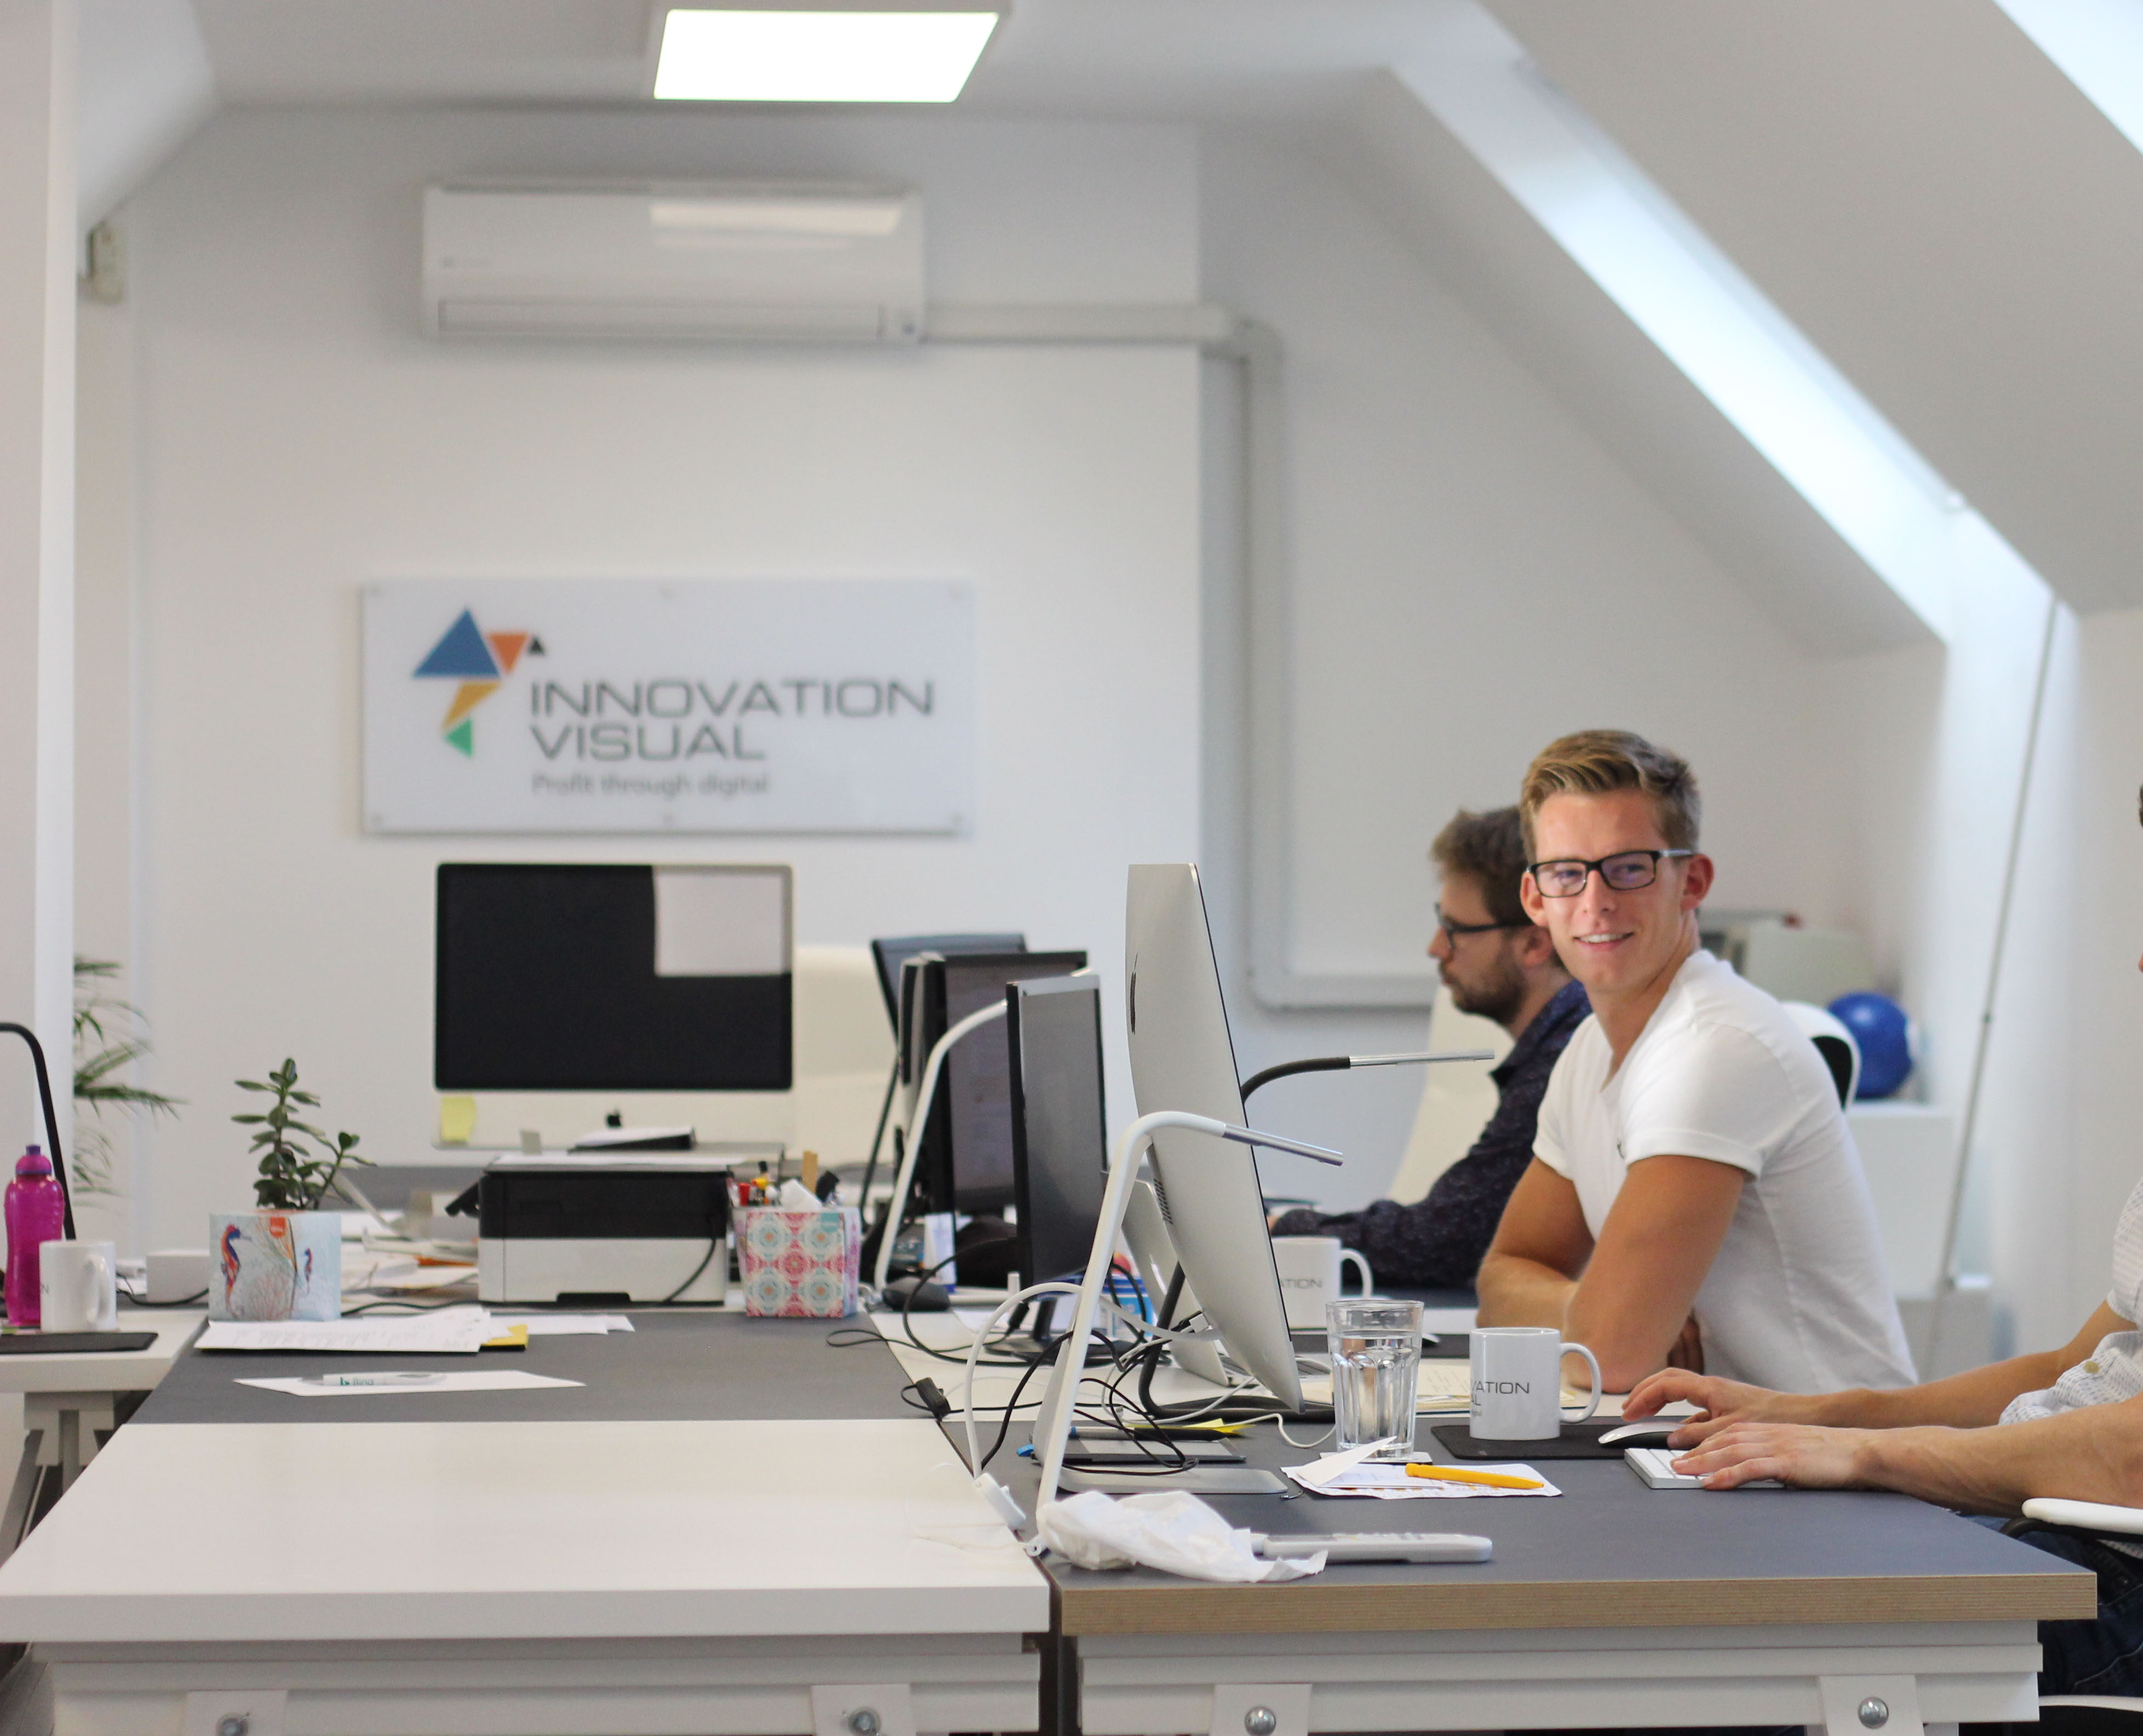 Innovation-Visual-digital-marketing-team-in-Surrey-office.jpg